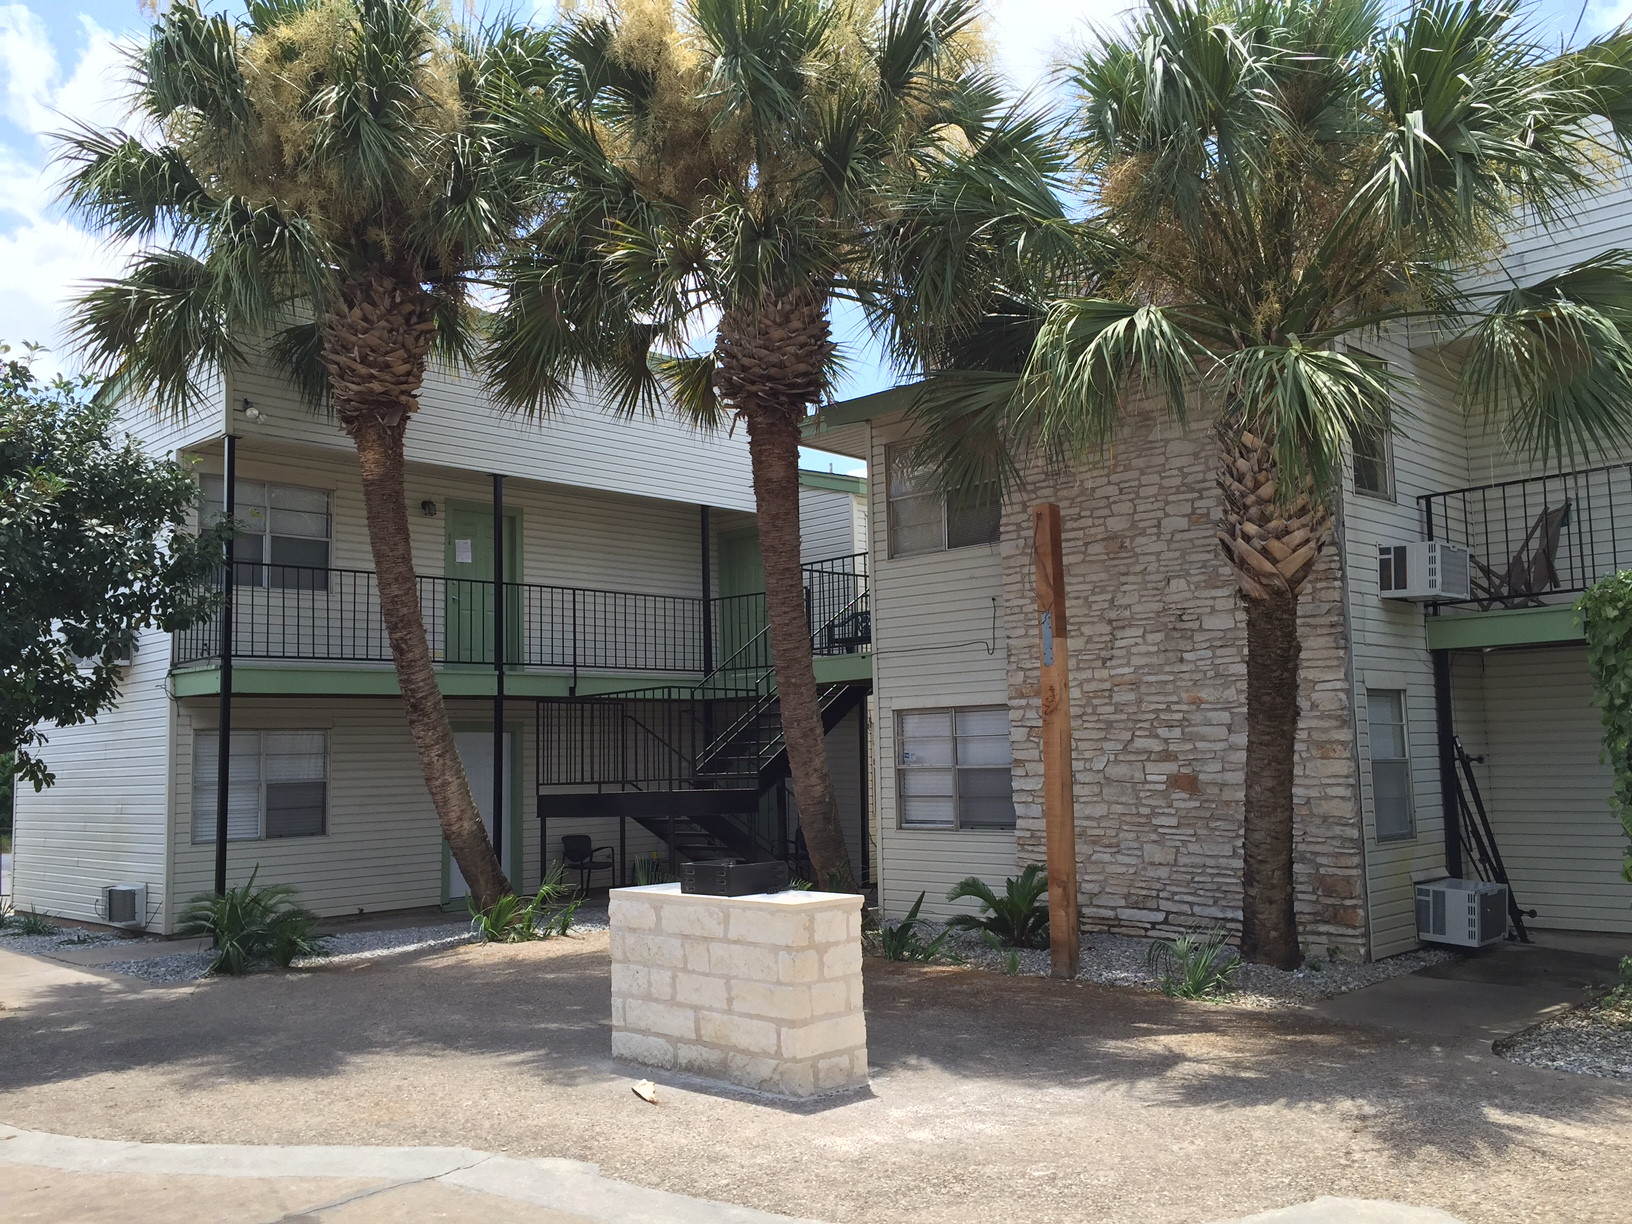 palm gardens local austin apartments - Palm Garden Apartments